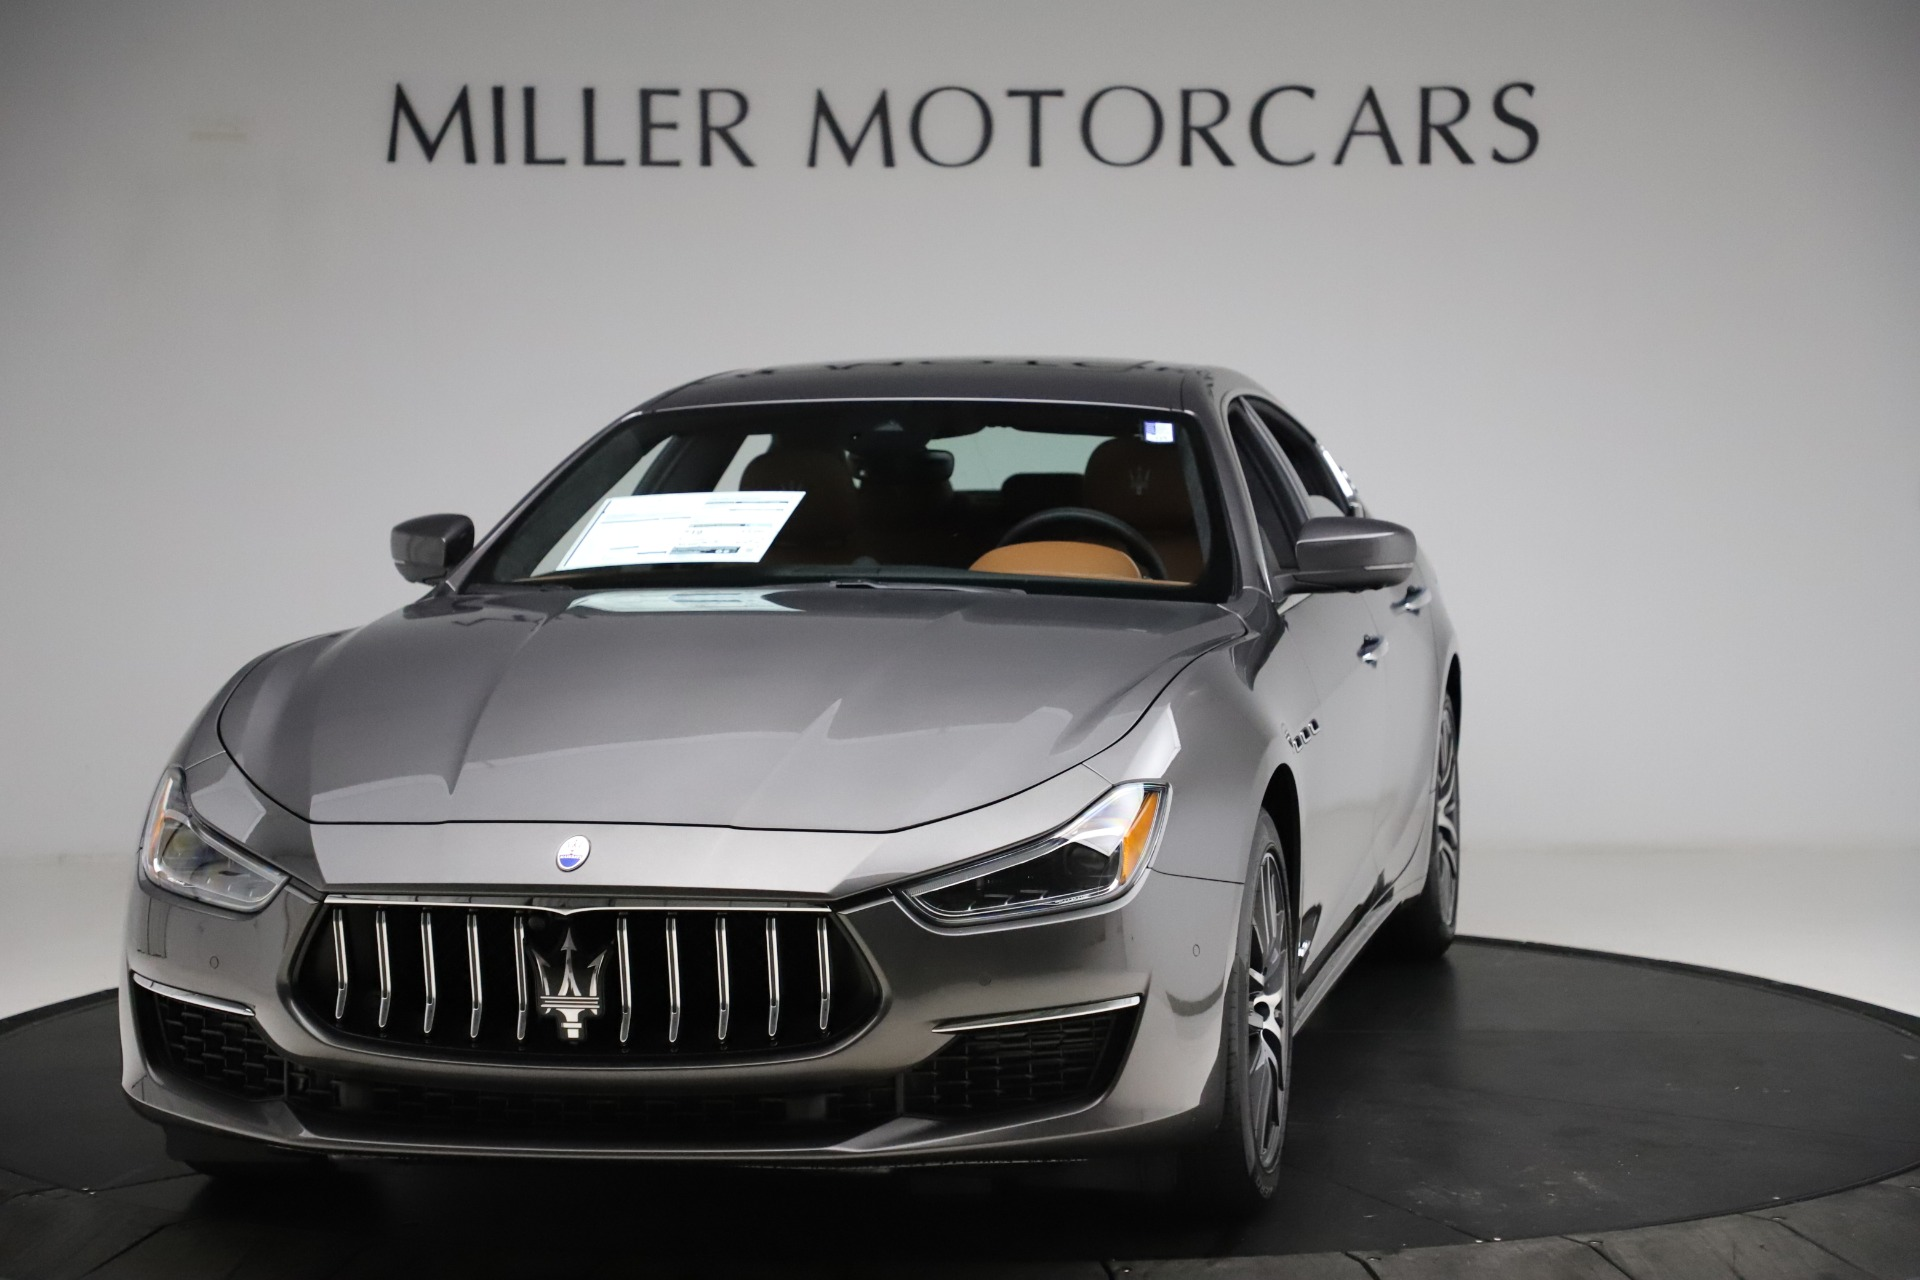 New 2021 Maserati Ghibli S Q4 GranLusso for sale Sold at Rolls-Royce Motor Cars Greenwich in Greenwich CT 06830 1